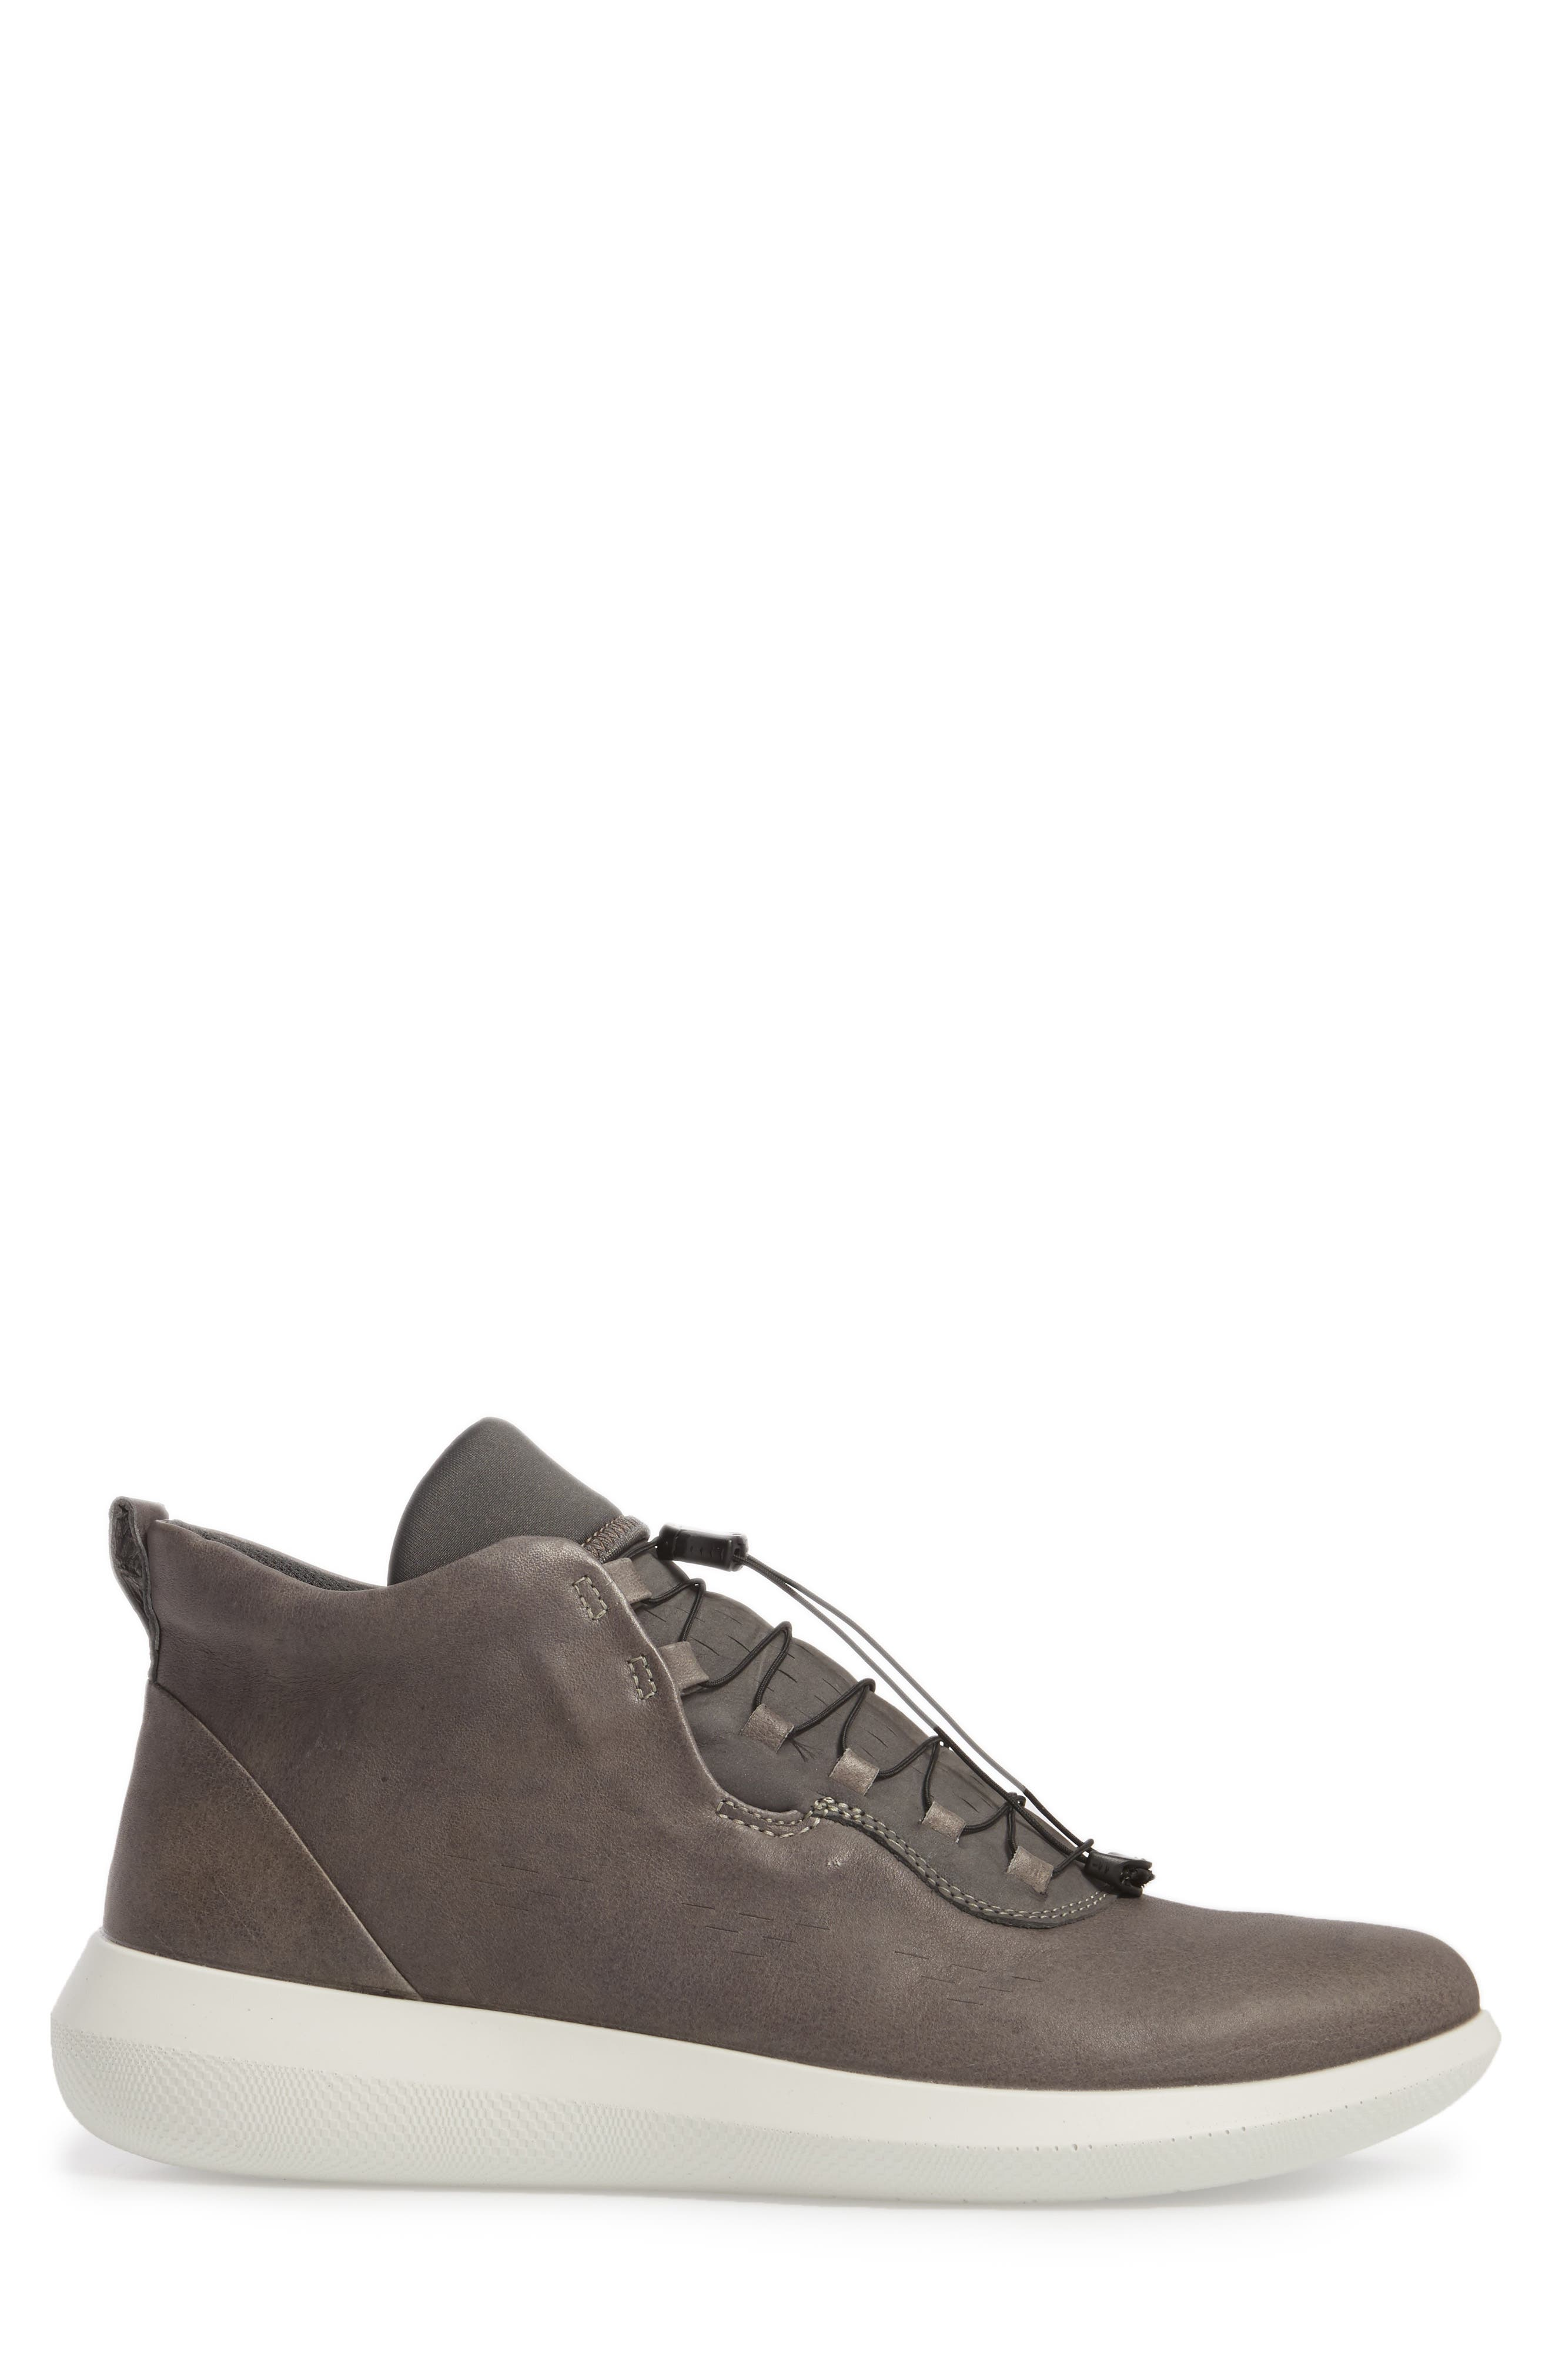 Scinapse High Top Sneaker,                             Alternate thumbnail 3, color,                             WILD DOVE LEATHER